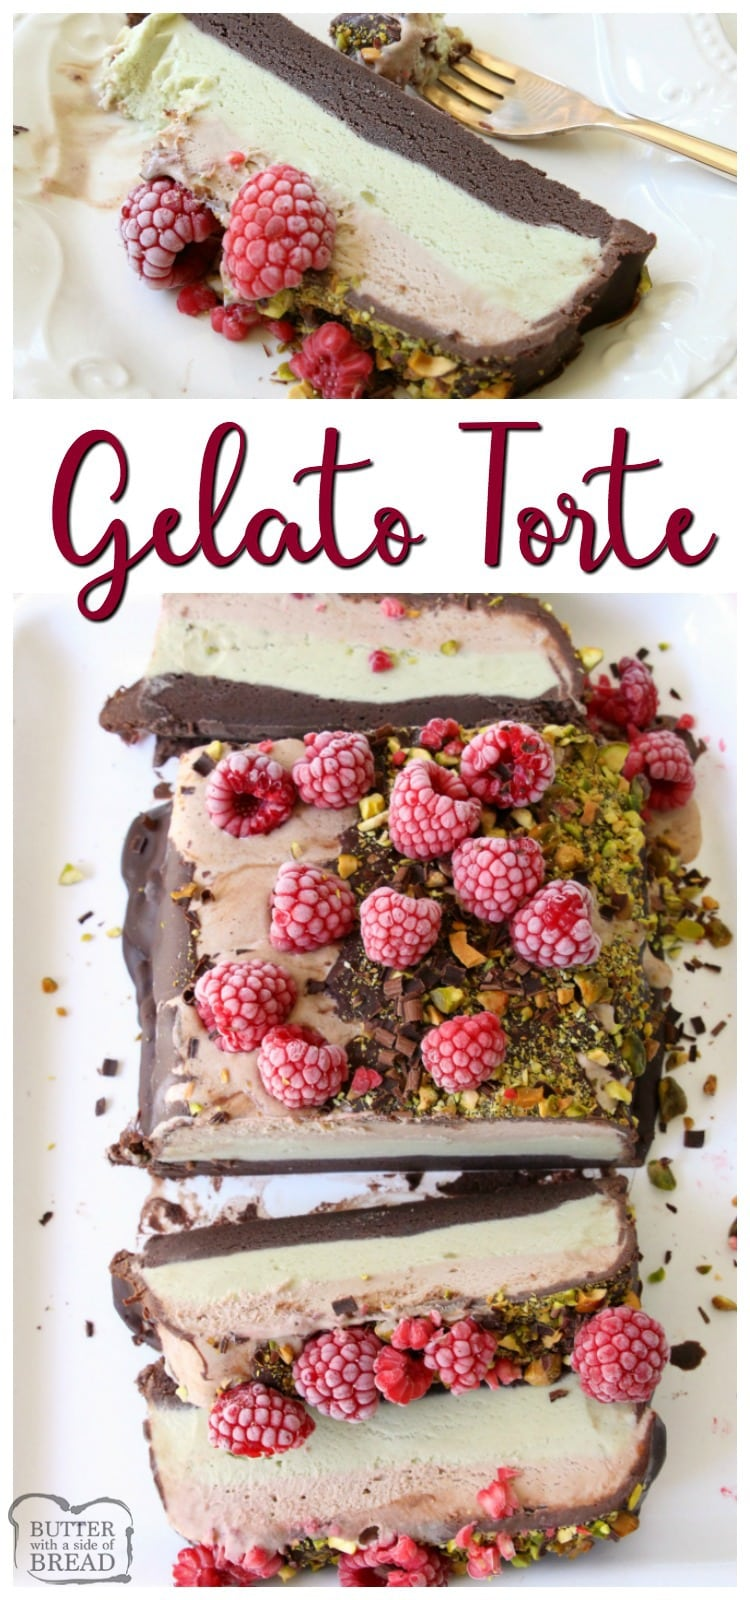 Gorgeous Gelato Torte recipe with incredible blend of flavors. Three layers of rich, creamy gelato topped with chocolate ganache, pistachios & fresh raspberries.Perfect summer #icecream #dessert #recipe from Butter With A Side of Bread AD